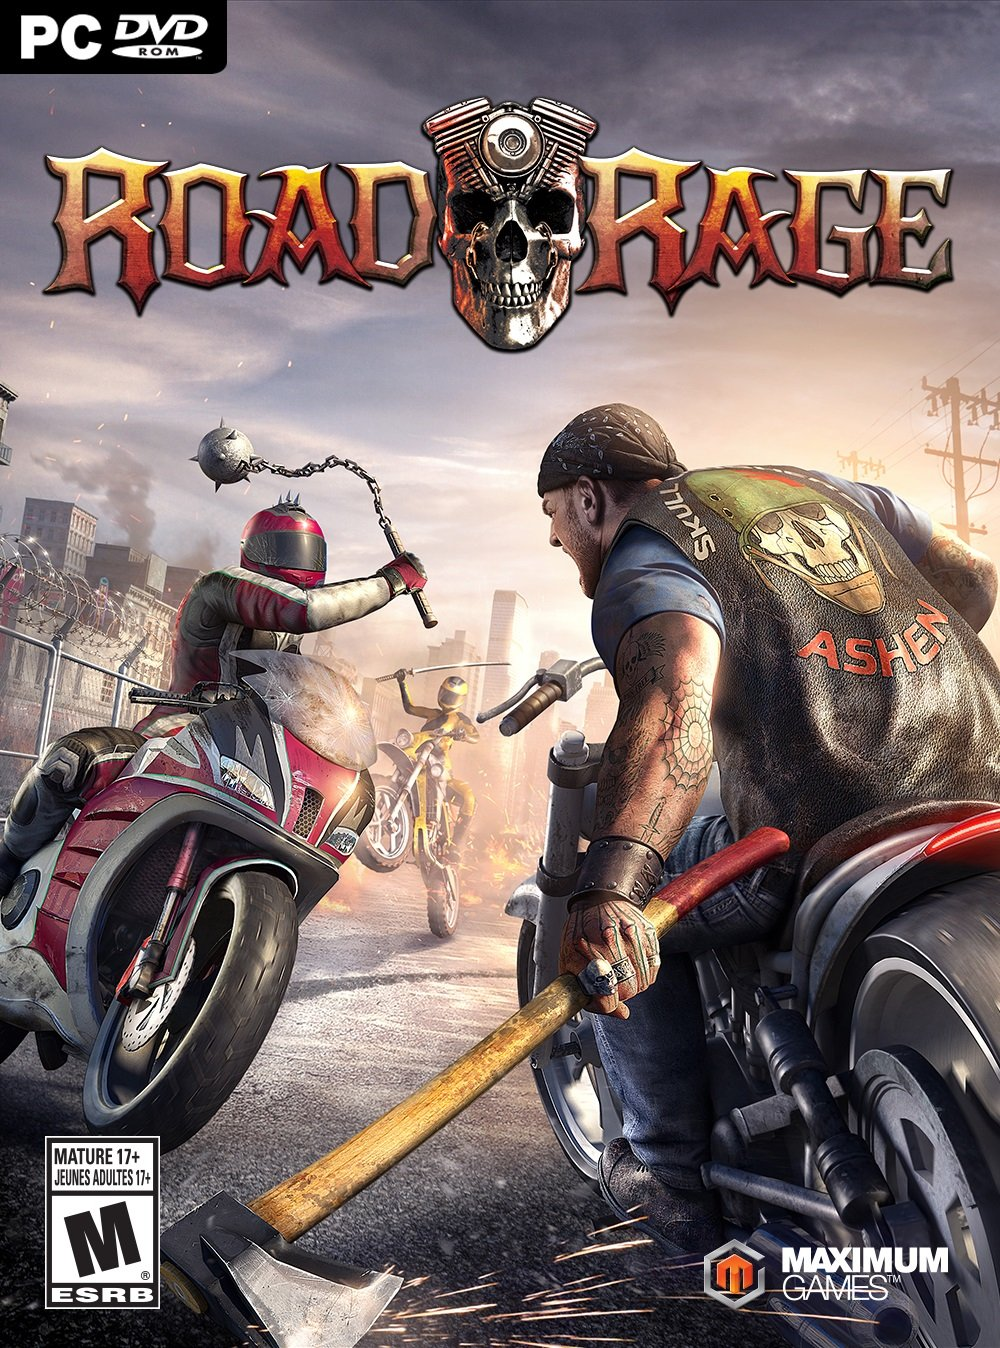 Image result for Road rage cover pc